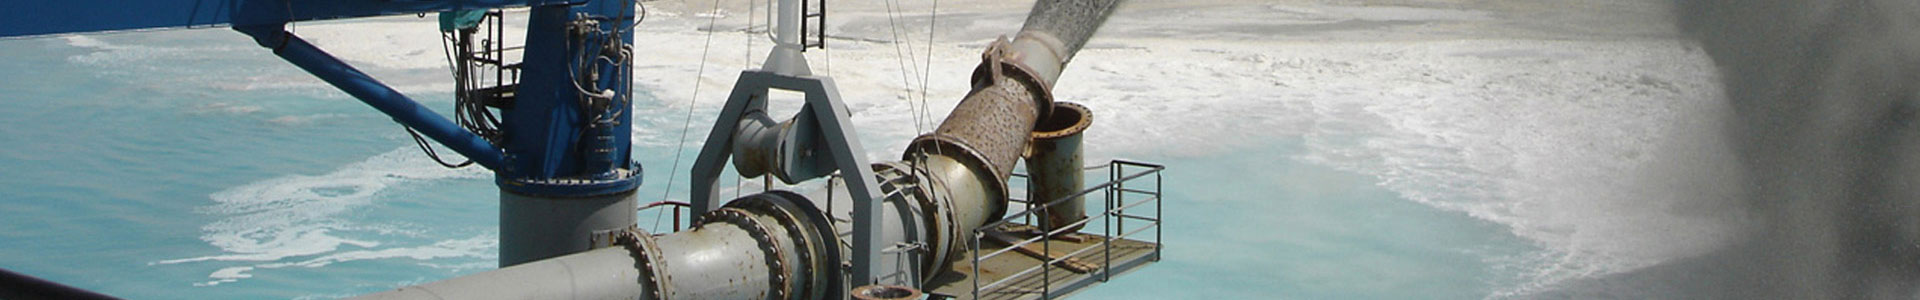 Dredge Pumps